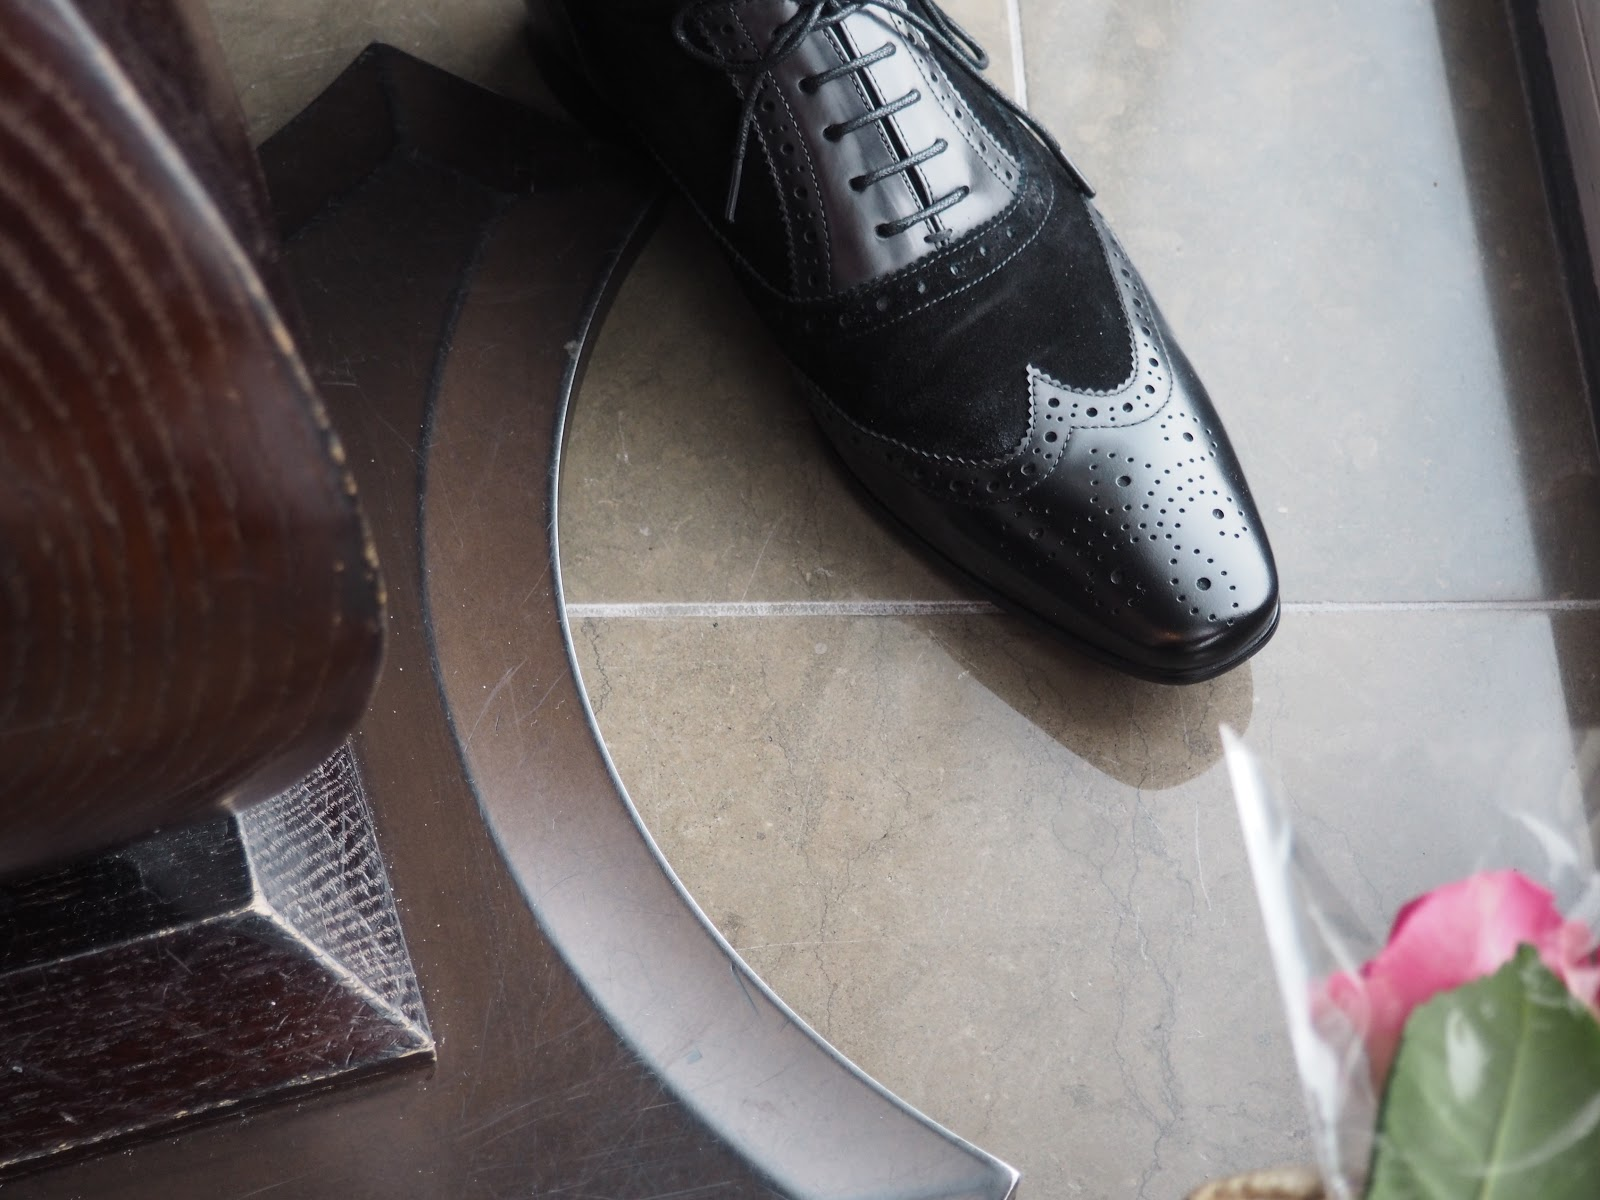 Men's shoes and roses under a table